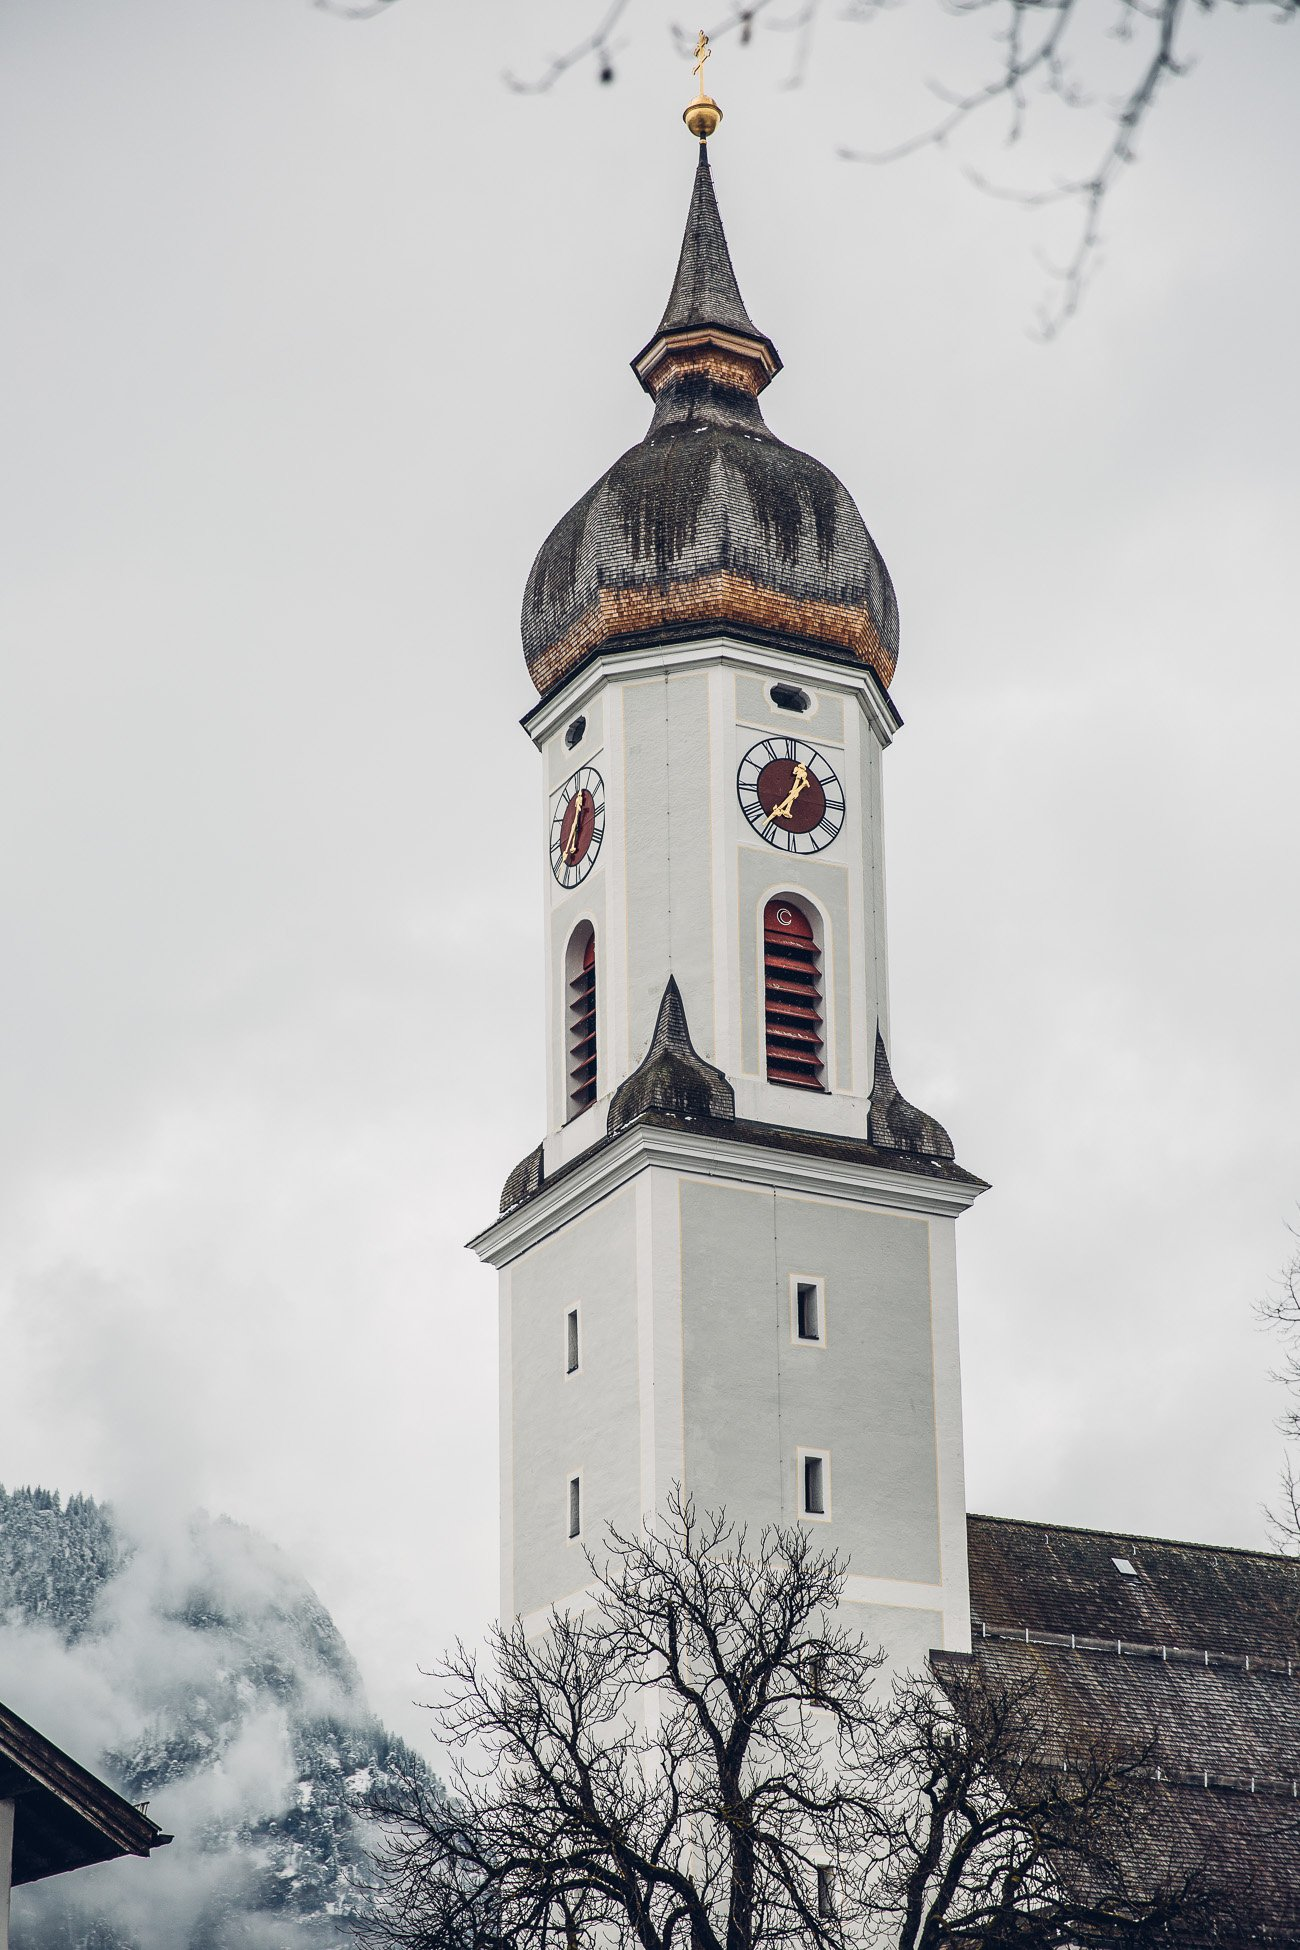 Garmisch-Partenkirchen Best of the Alps